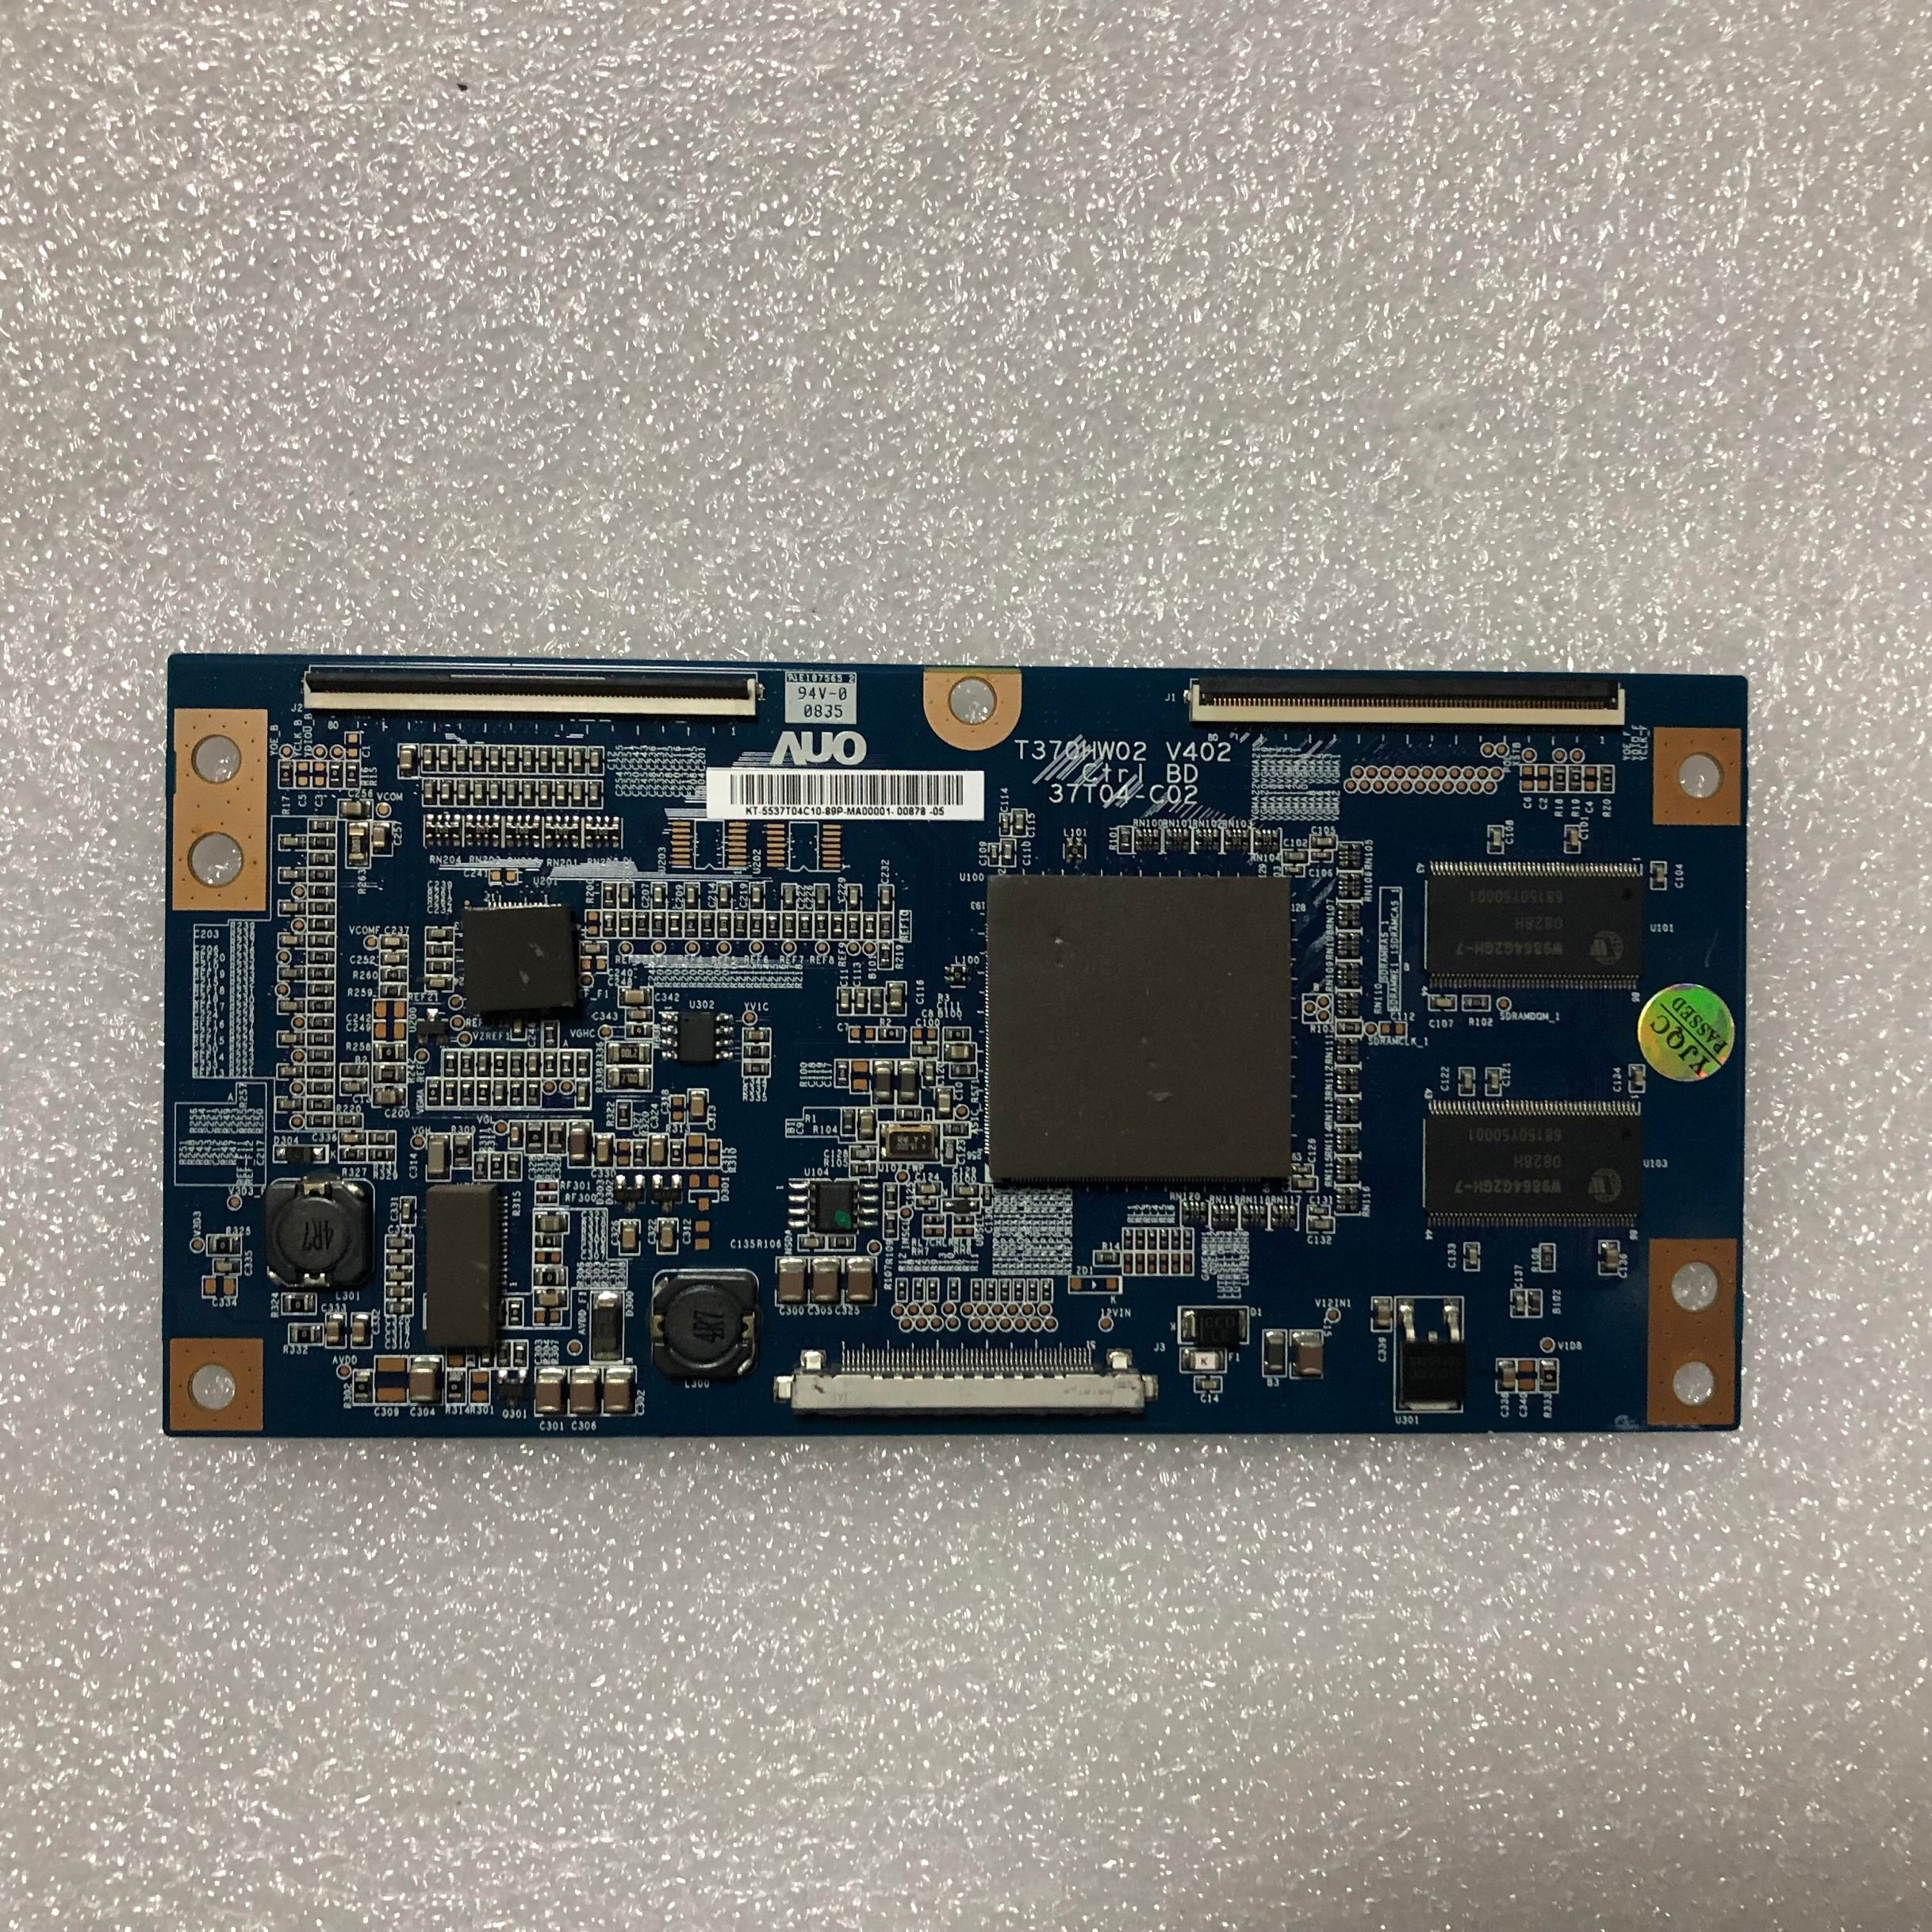 🛒 T370HW02 V402 37T04 C02 LCD Board Logic board FOR connect with